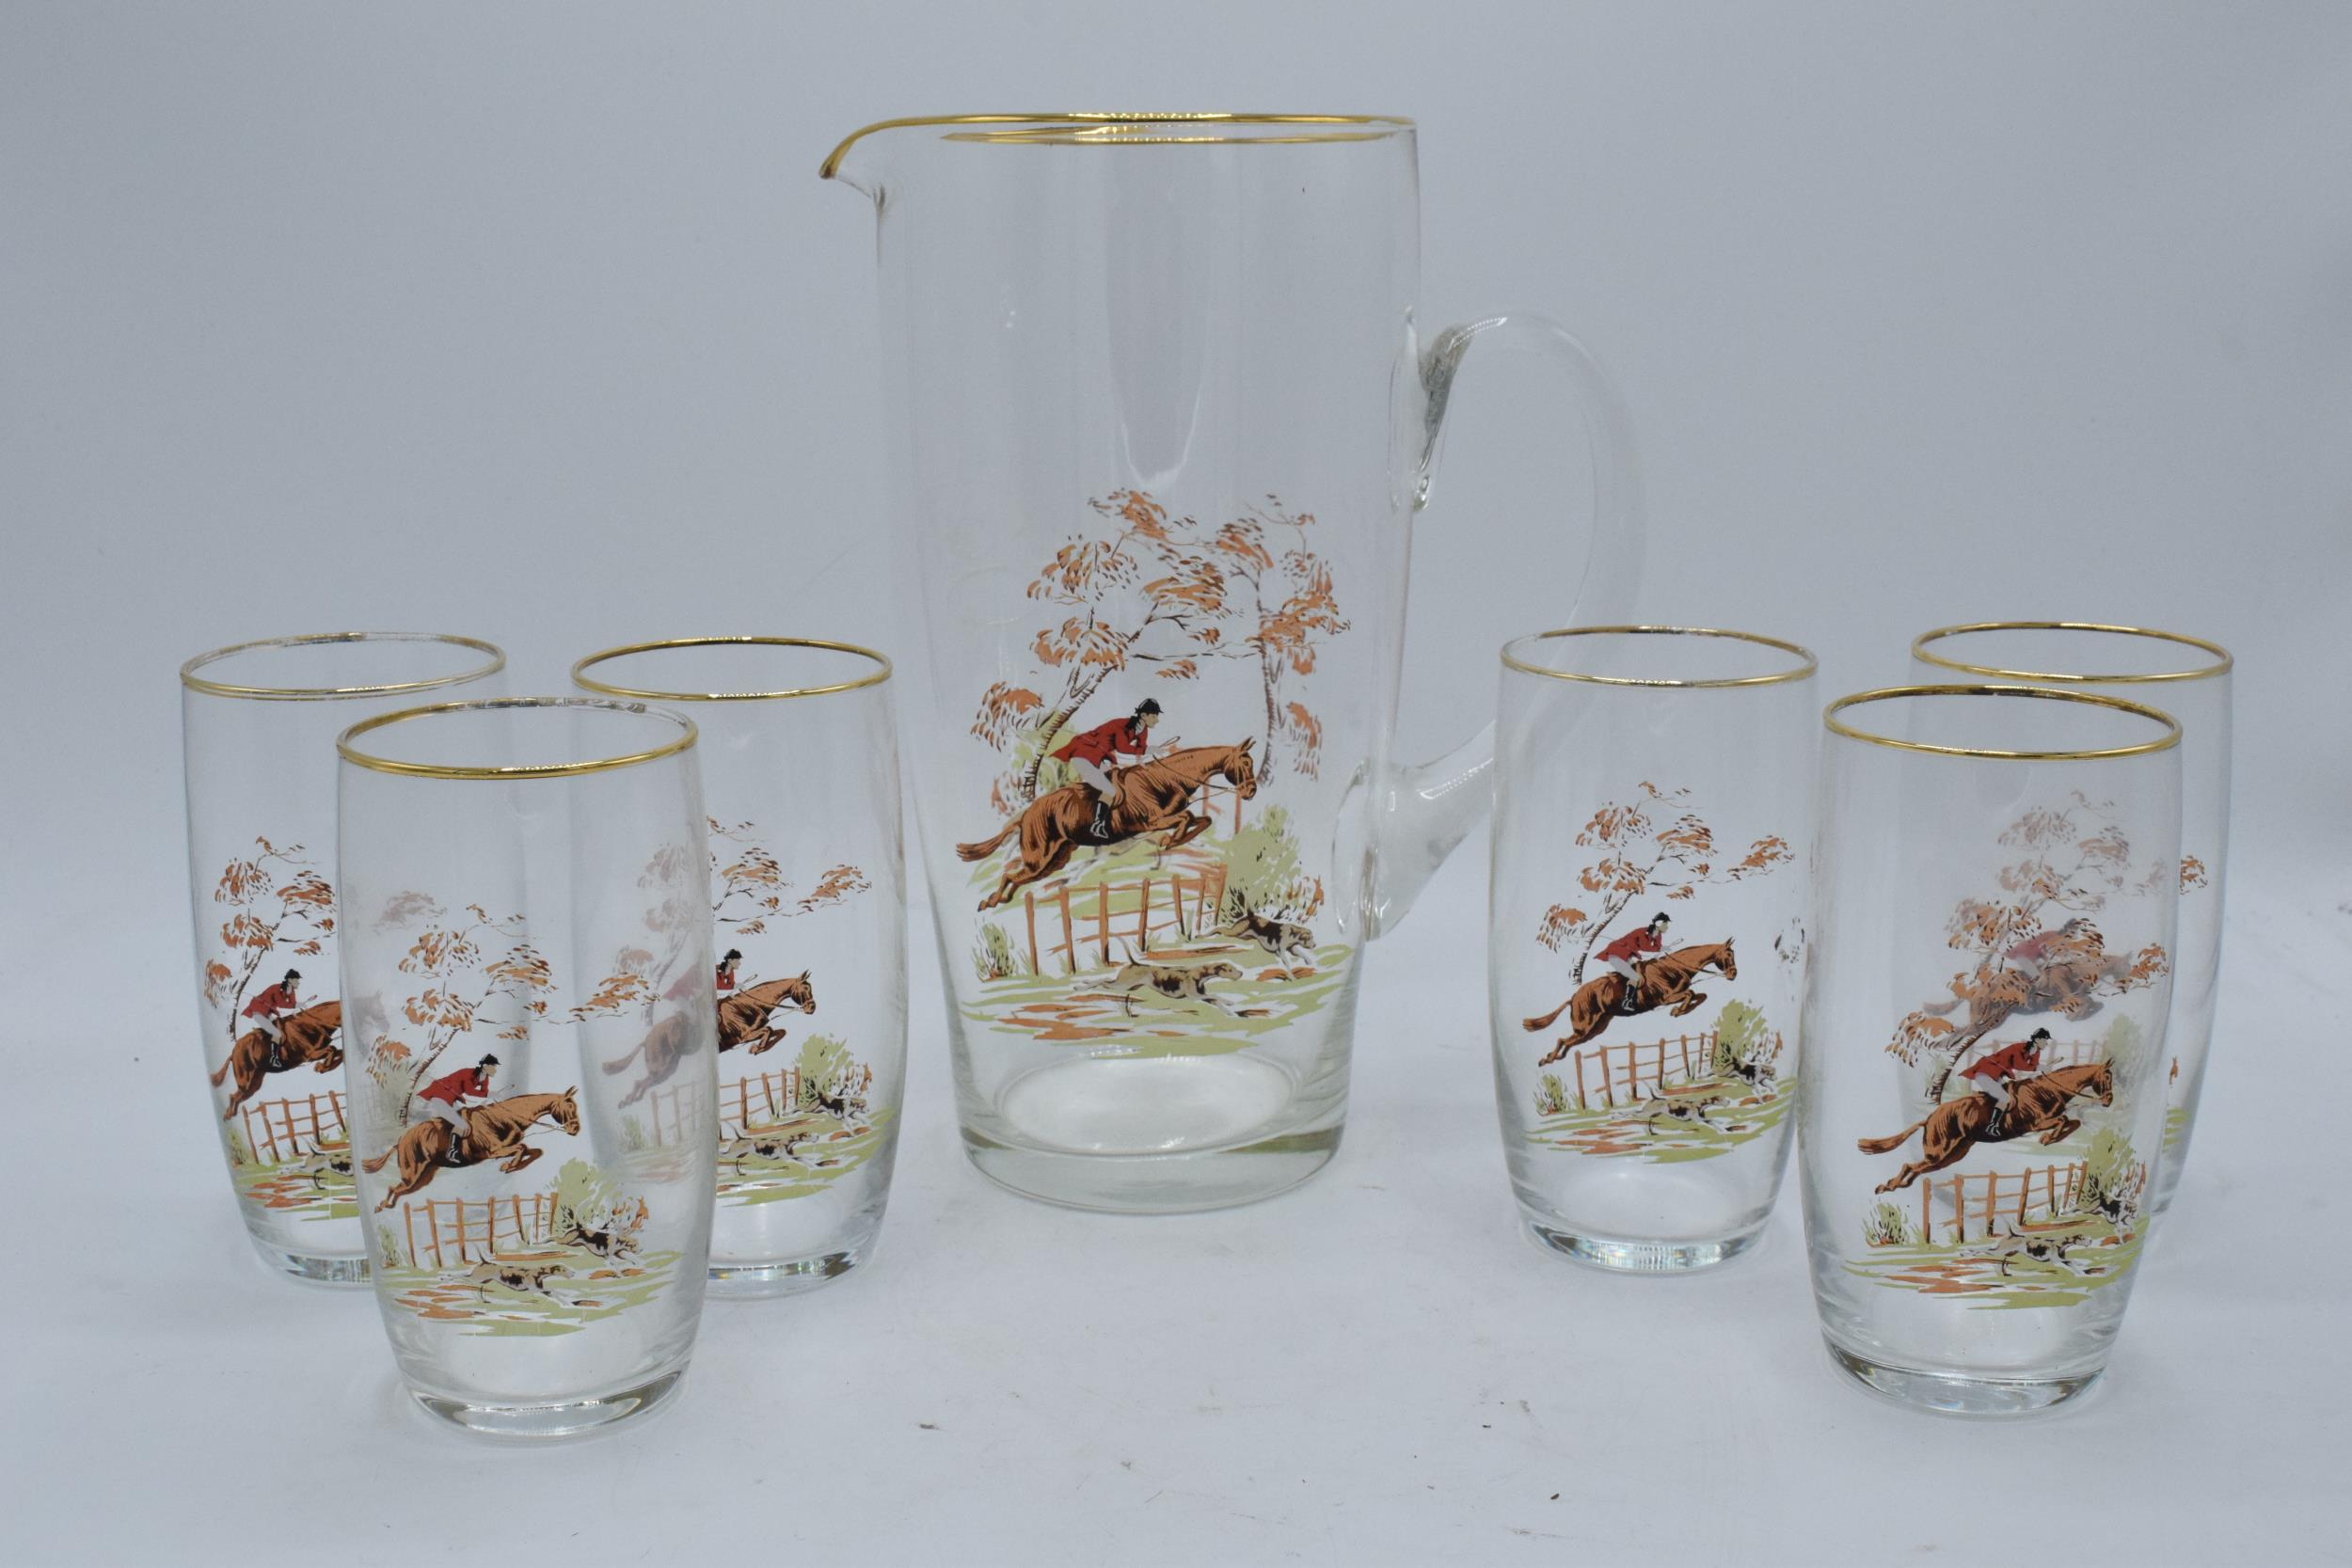 A glass water jug together with 6 glasses depicting traditional hunting scenes (7). In good